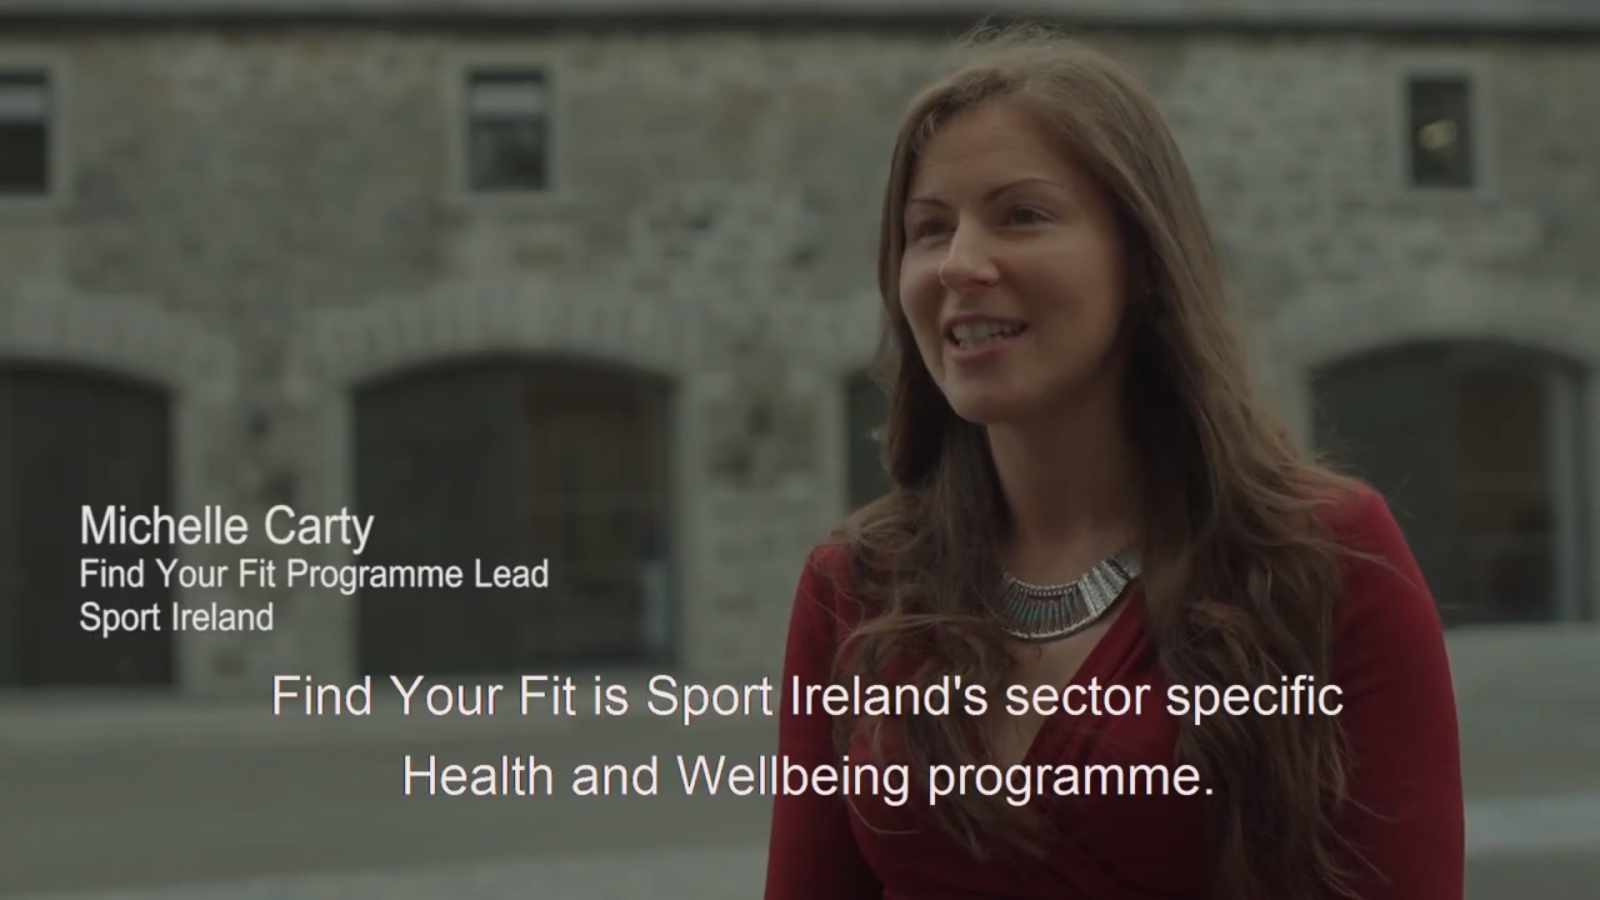 Michelle Carty presents the Find your Fit programme